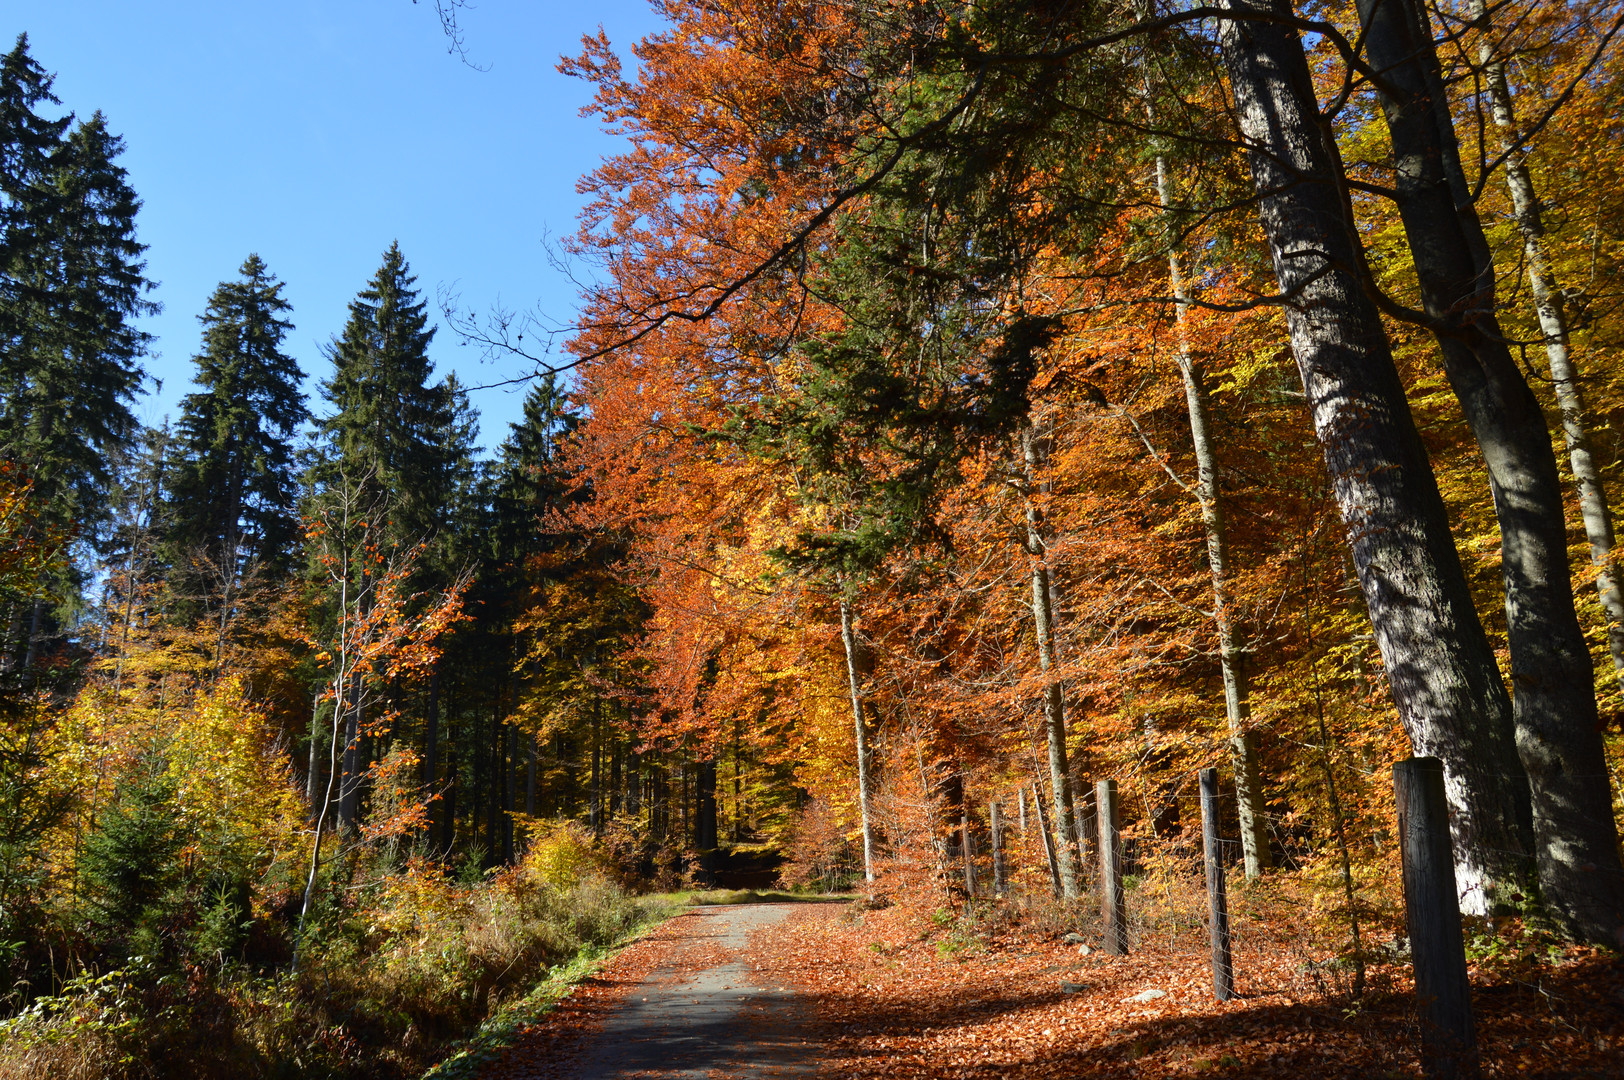 autumn nature in the forest